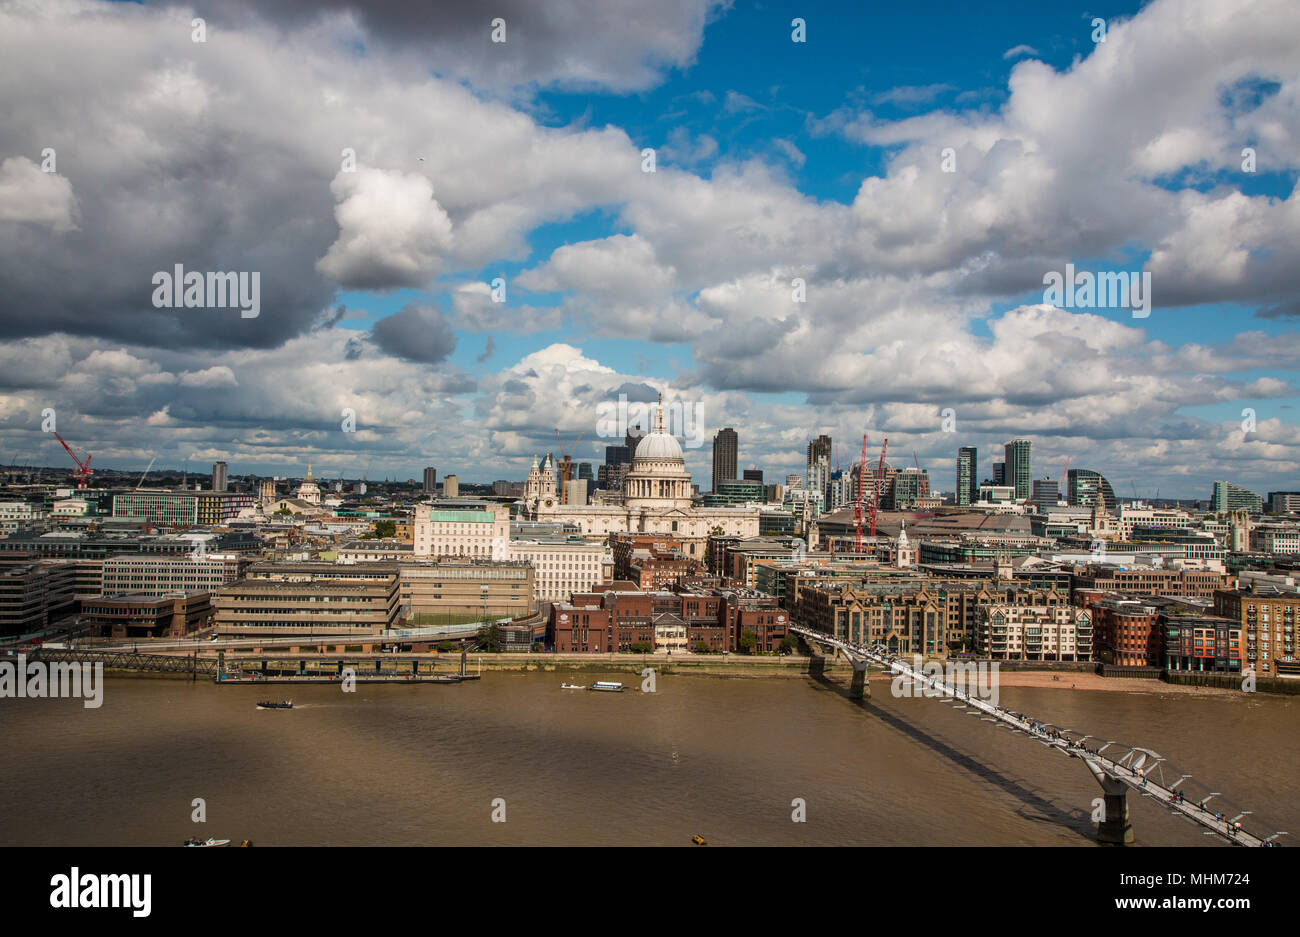 View from the Tate modern - London uk - Stock Image